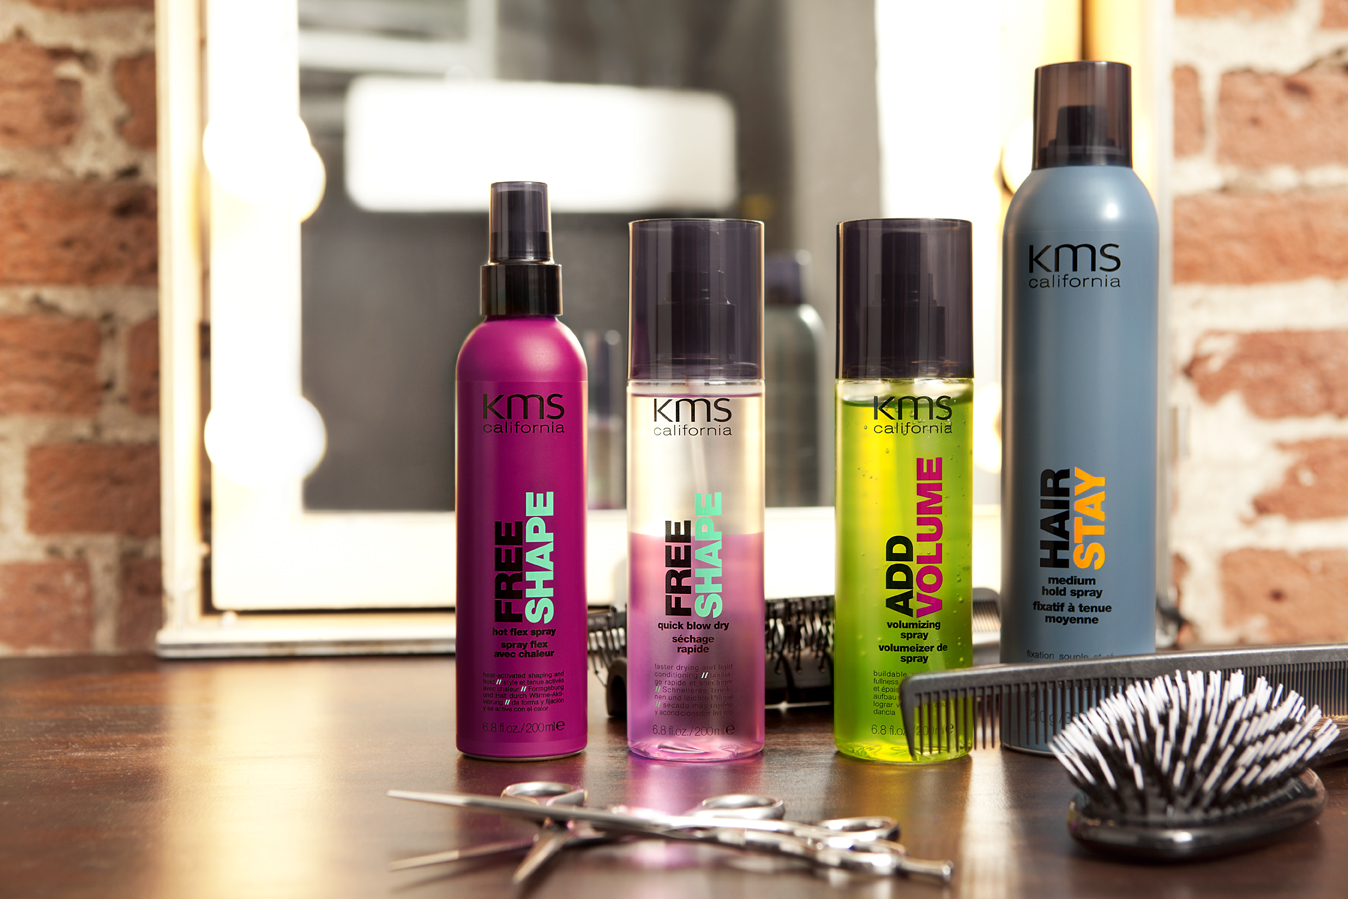 Group_FS_hot_flex_spray_quick_blow_dry_AV_volumizing_spray_HP_medium_hold_spray_lo_res.jpg